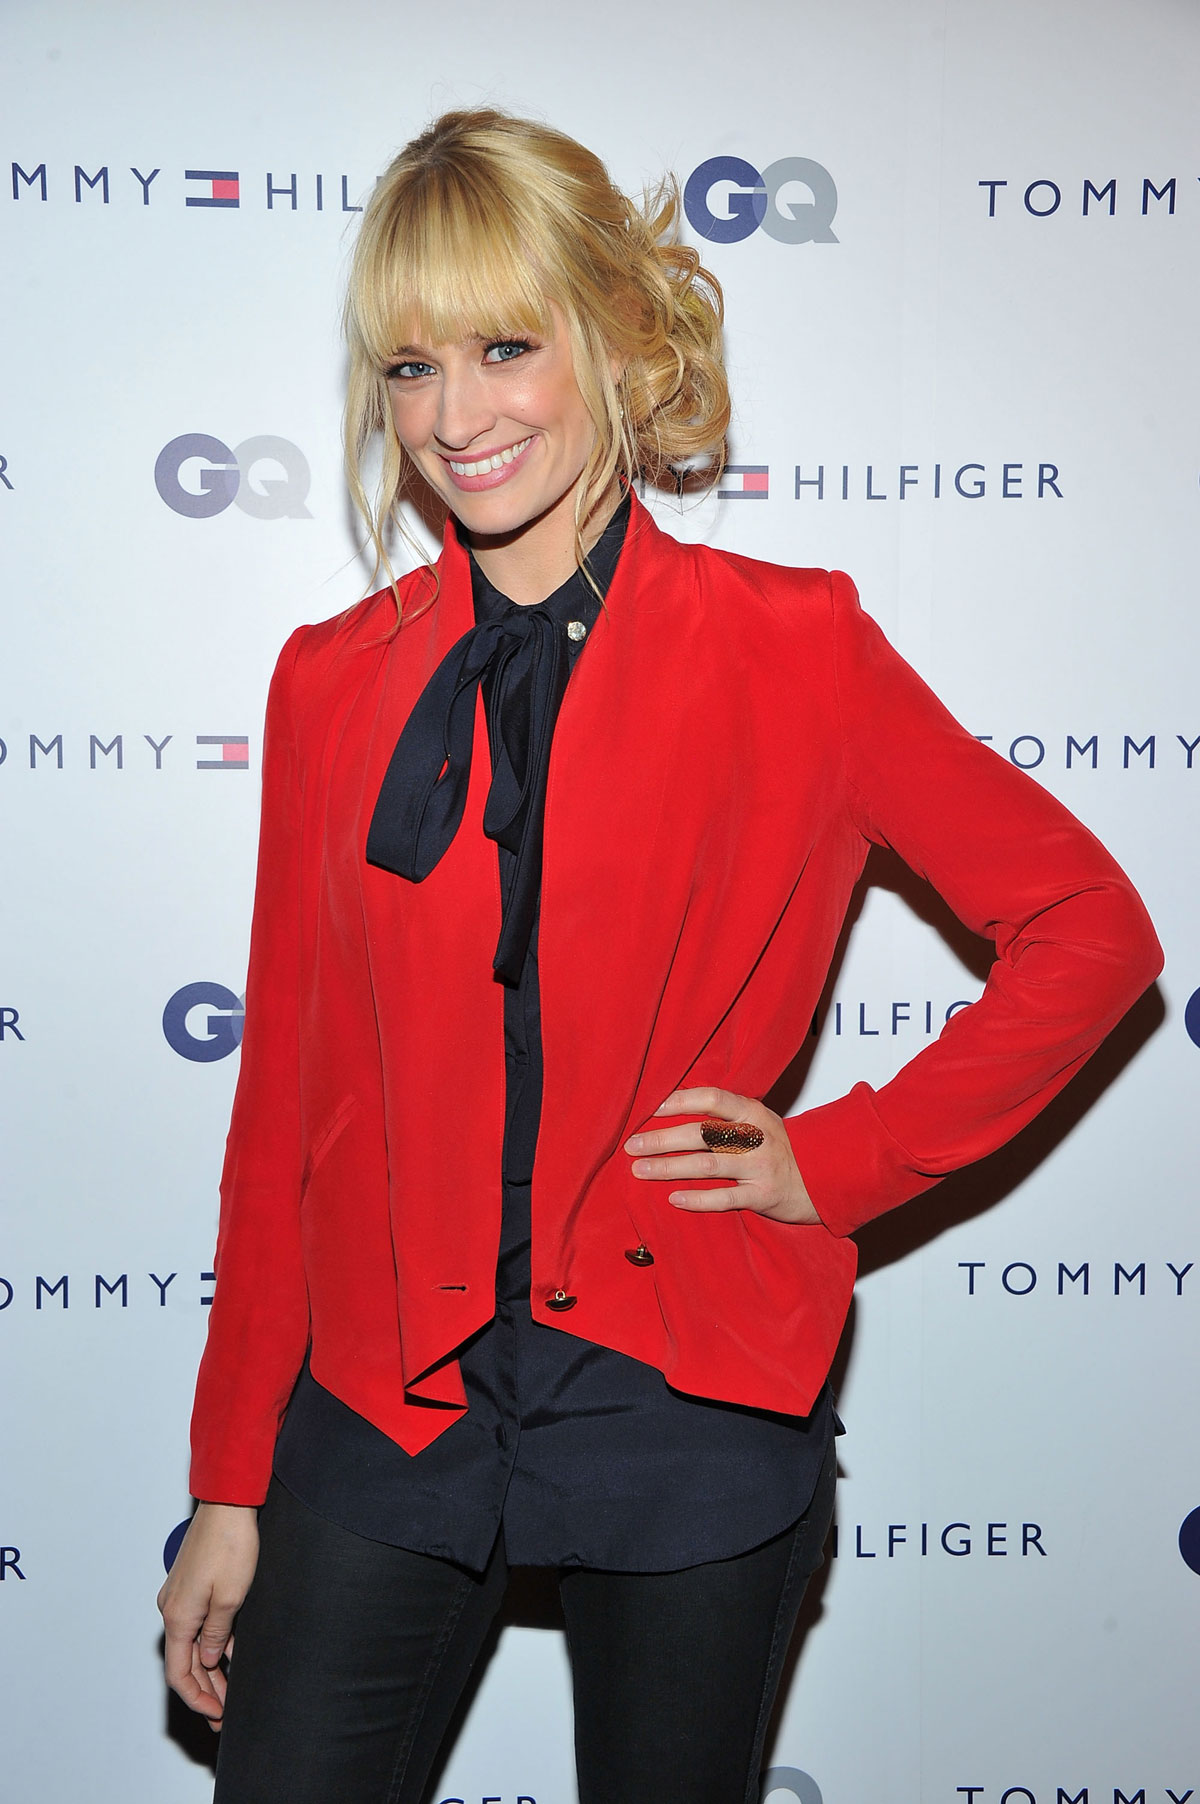 Beth behrs at tommy hilfiger gq men of new york party in new york